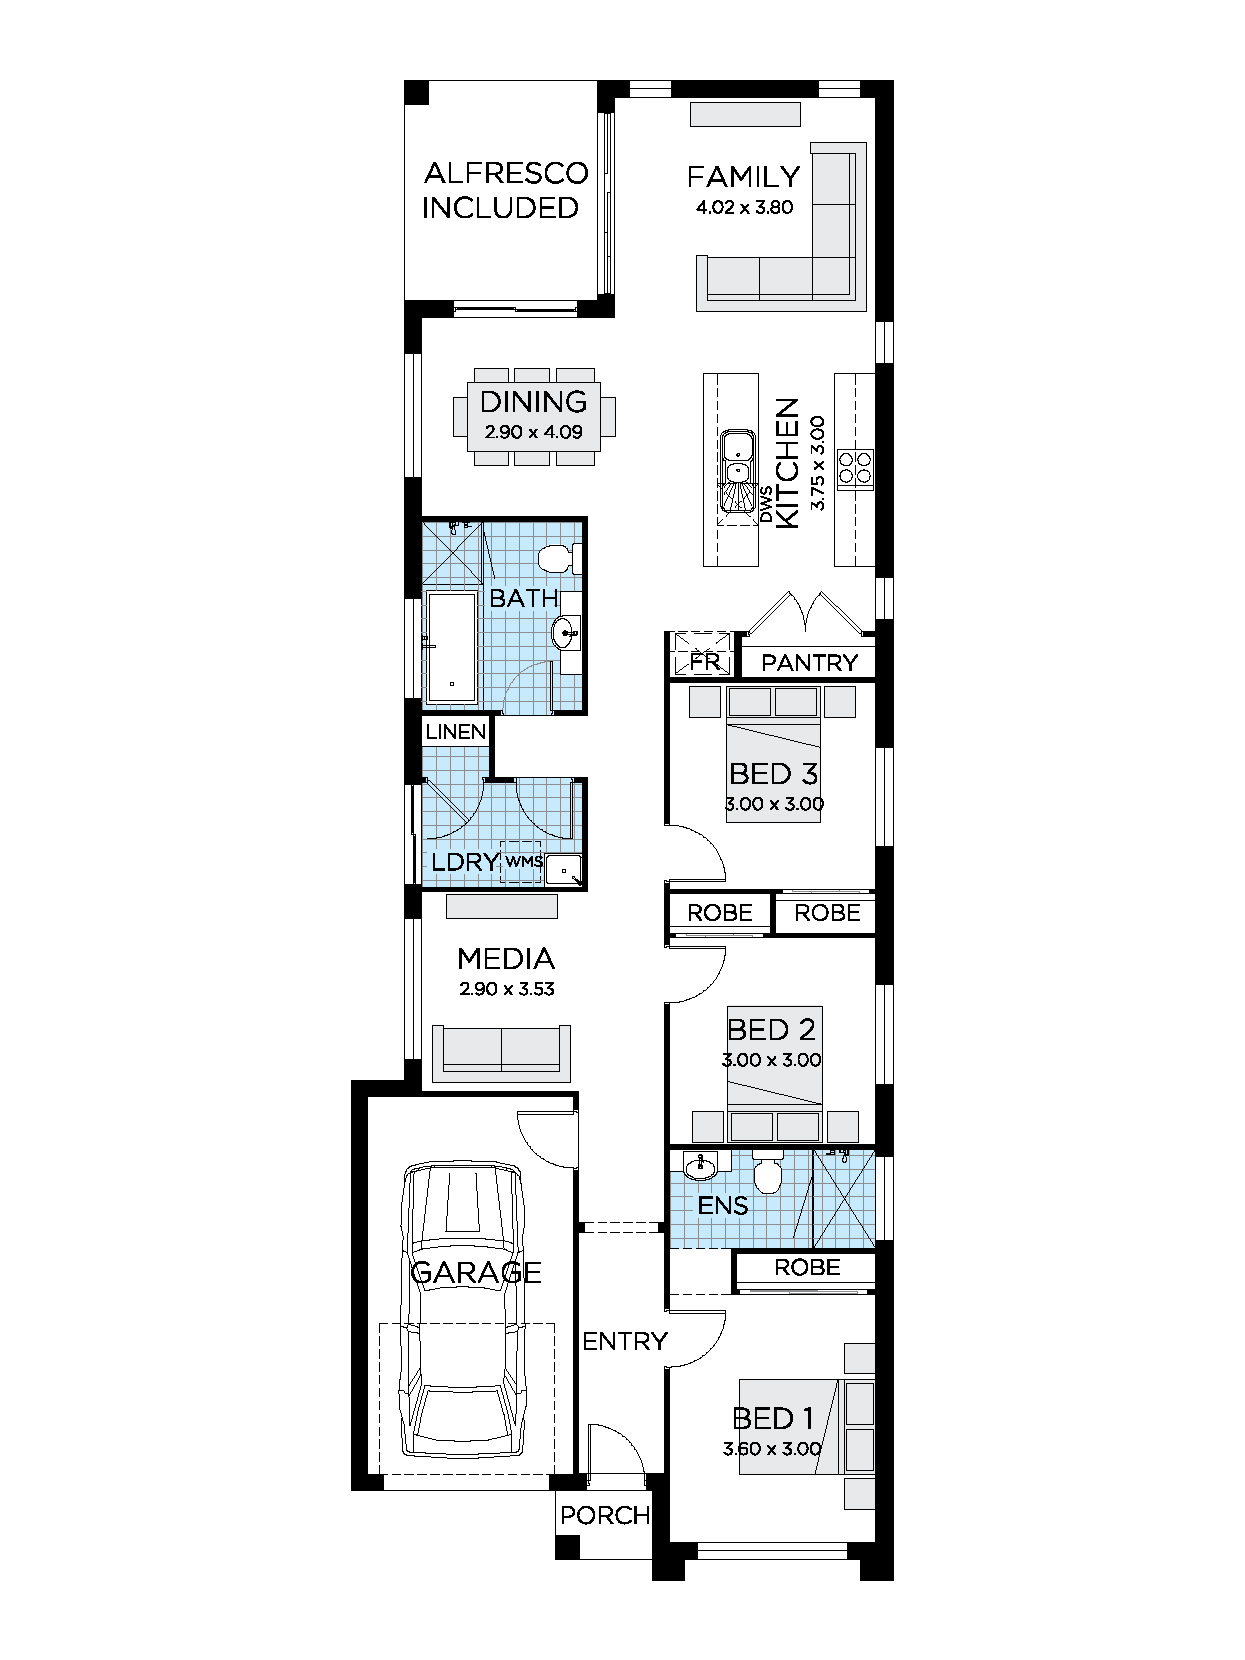 Zen Home Design | Narrow Lot House Plan | Thrive Homes Zen House Design Floor Plan on modern minimalist house floor plan, zen house design concept, zen house design style,